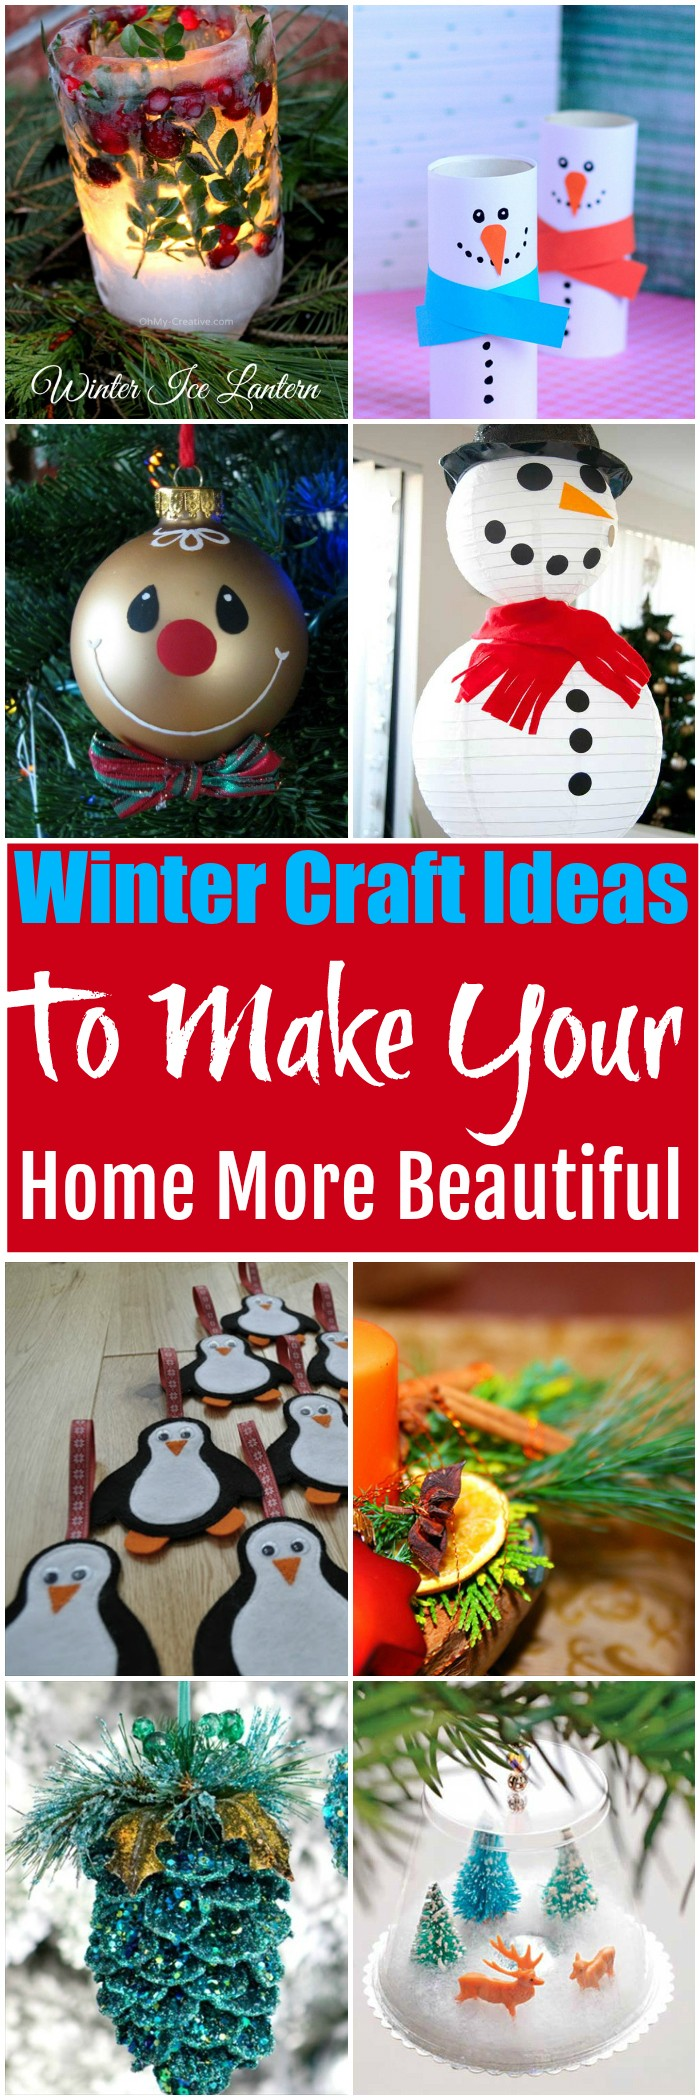 Winter Craft Ideas To Make Your Home More Beautiful